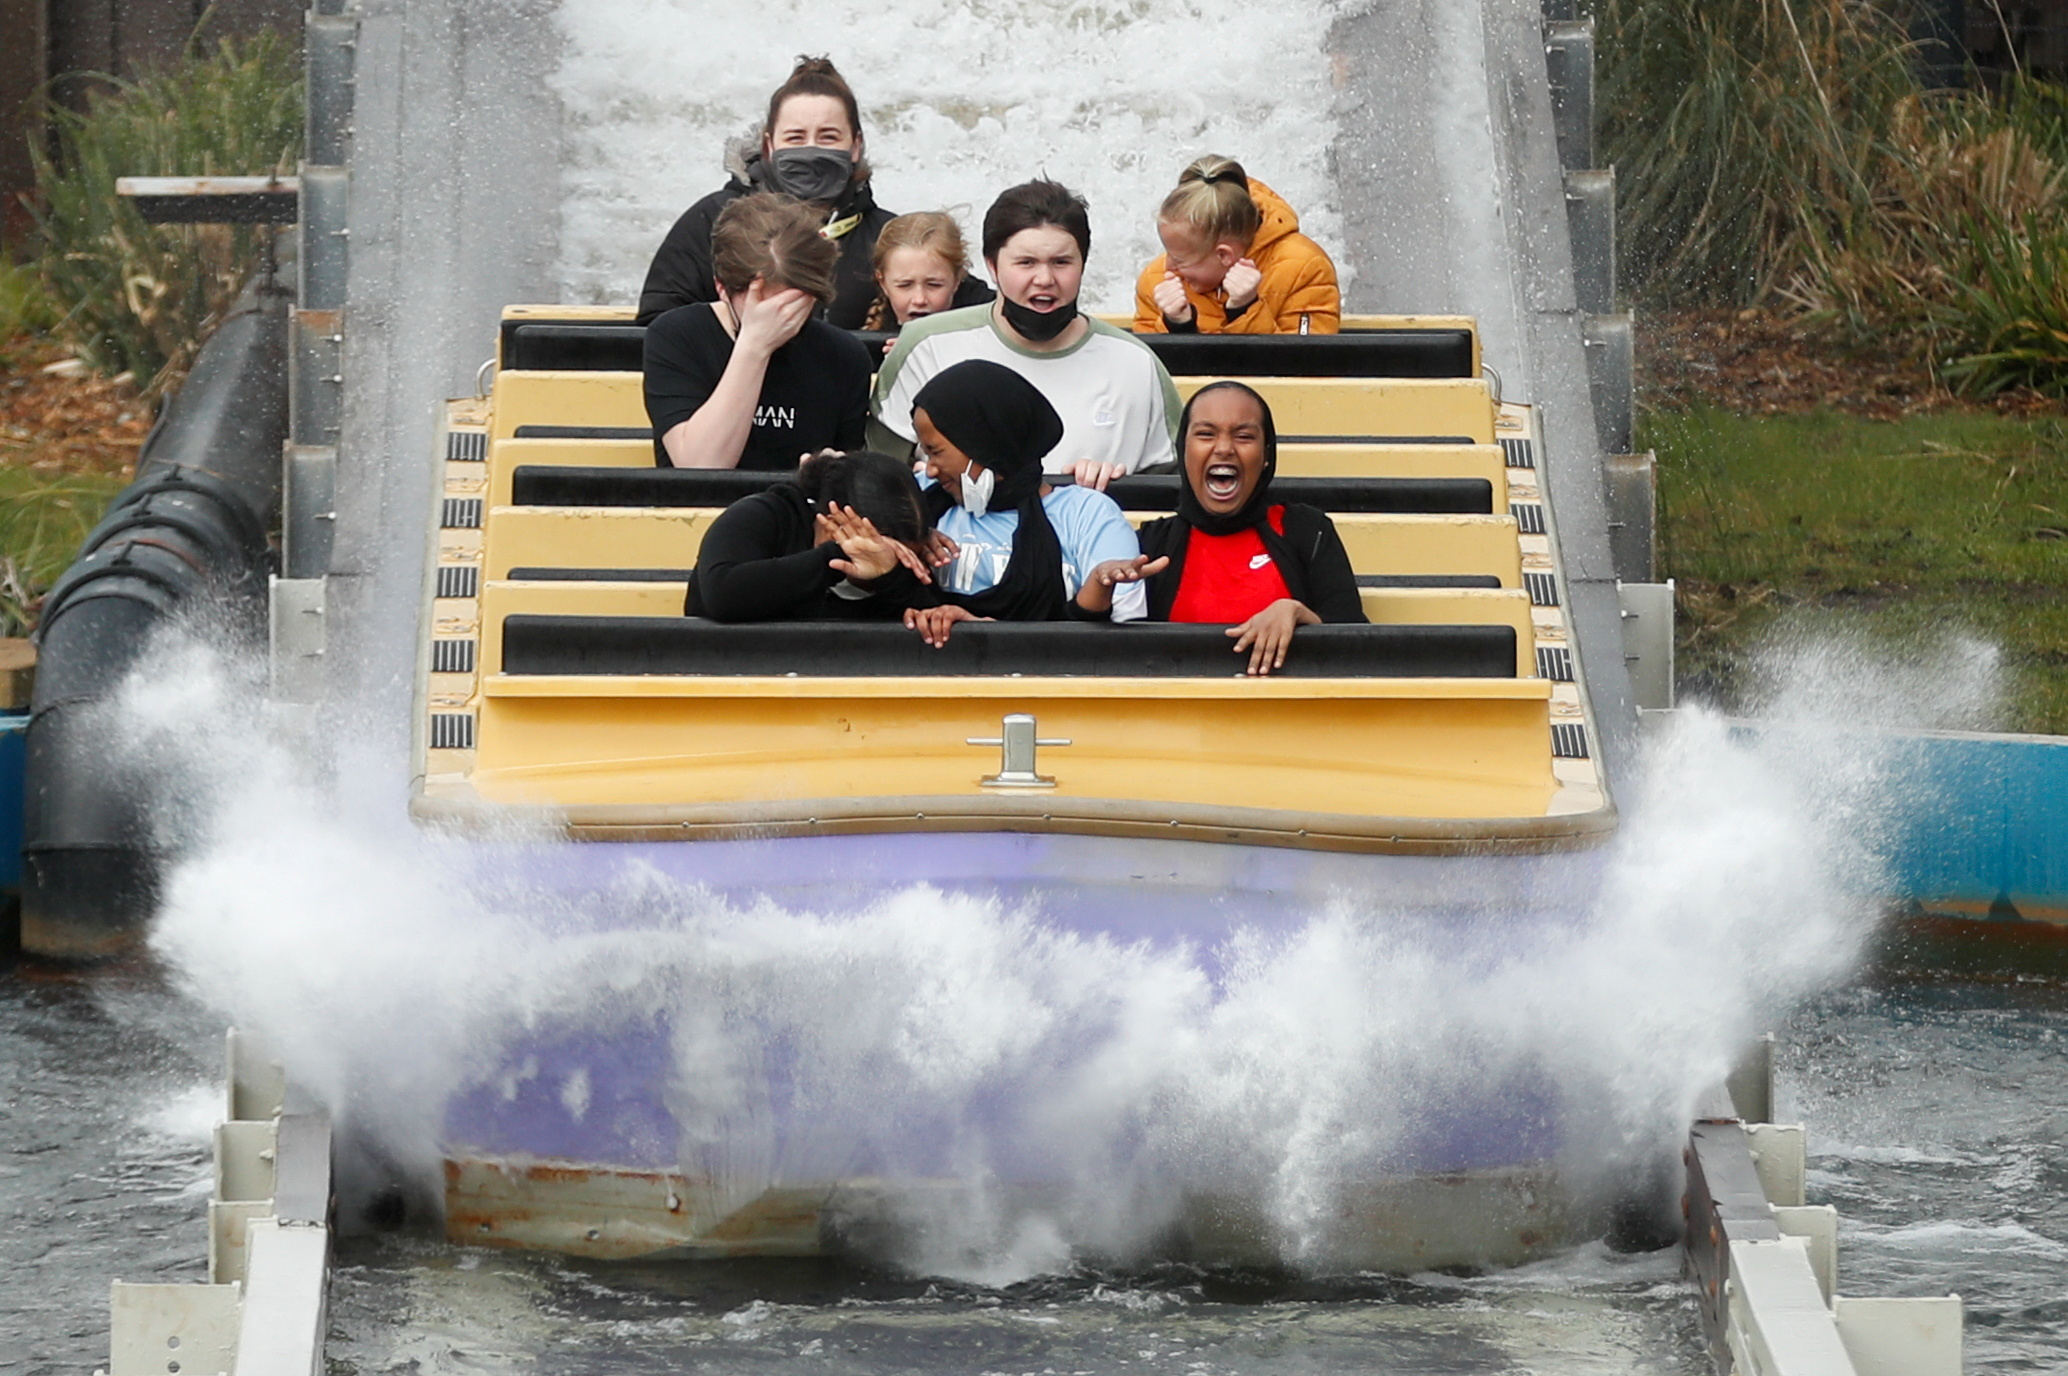 People react while on a ride as Thorpe Park reopens following easing of the coronavirus disease (COVID-19) restrictions, in London, Britain April 12, 2021. REUTERS/Matthew Childs